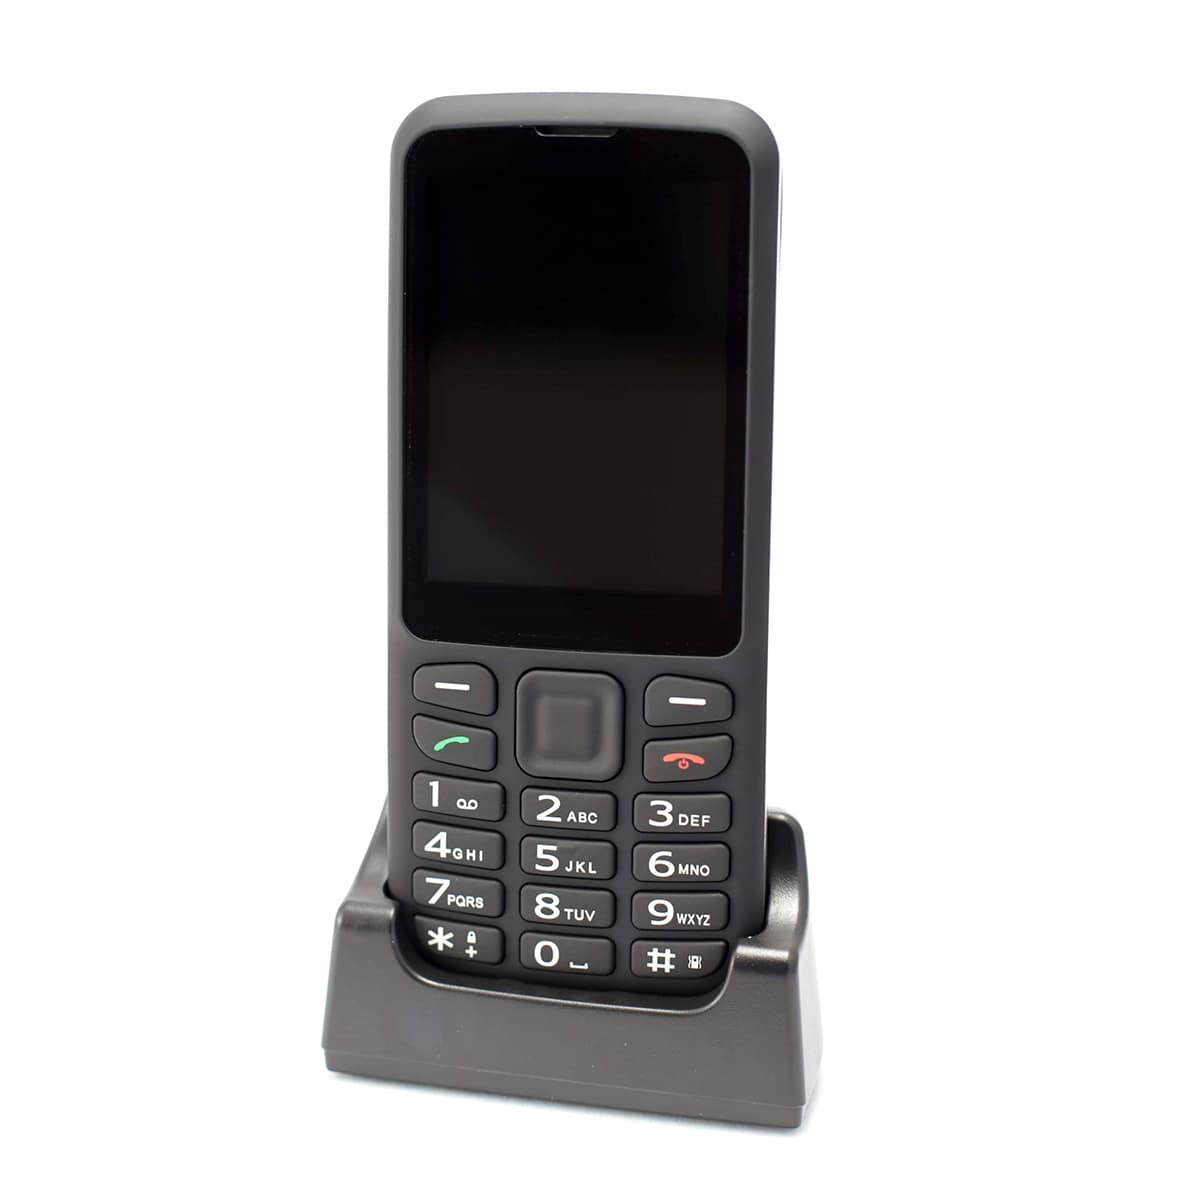 Photo of BlindShell Classic 2 smart phone sitting upright in a charger.